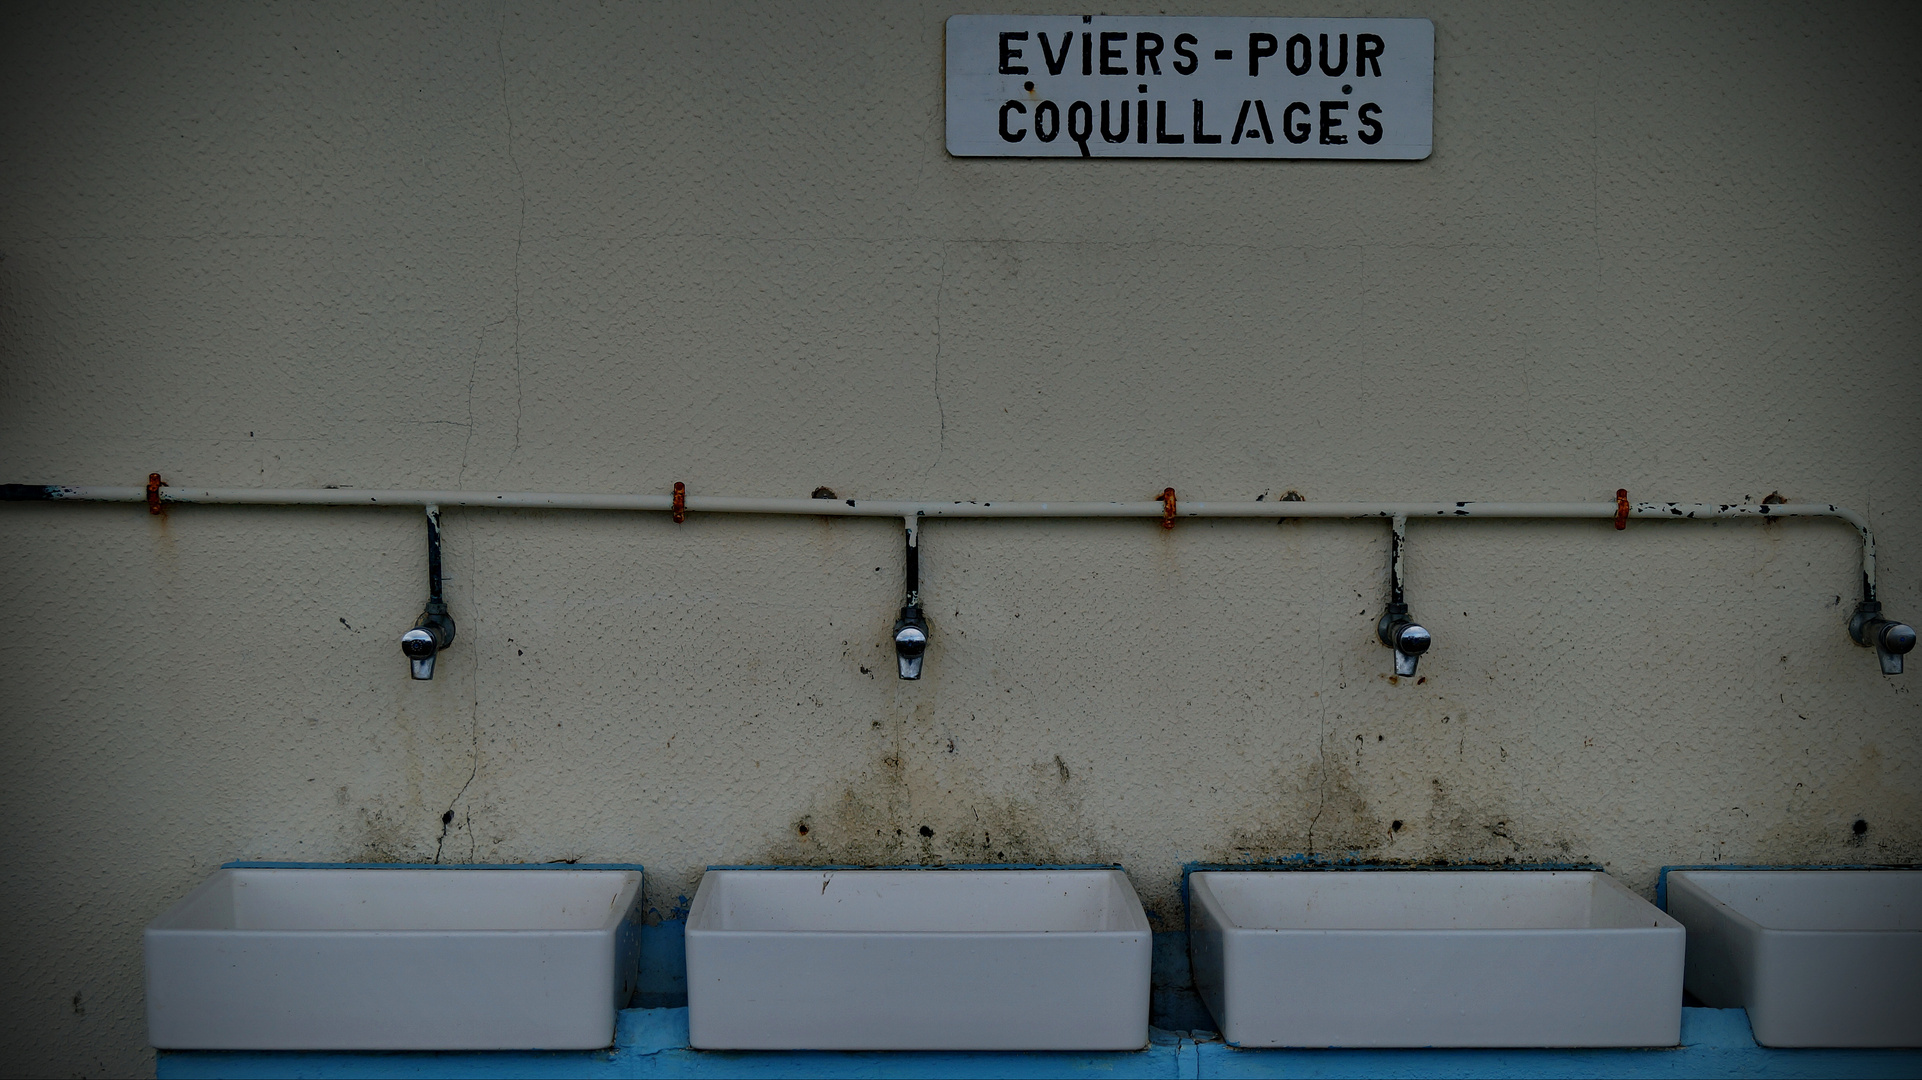 Eviers pour coquillages